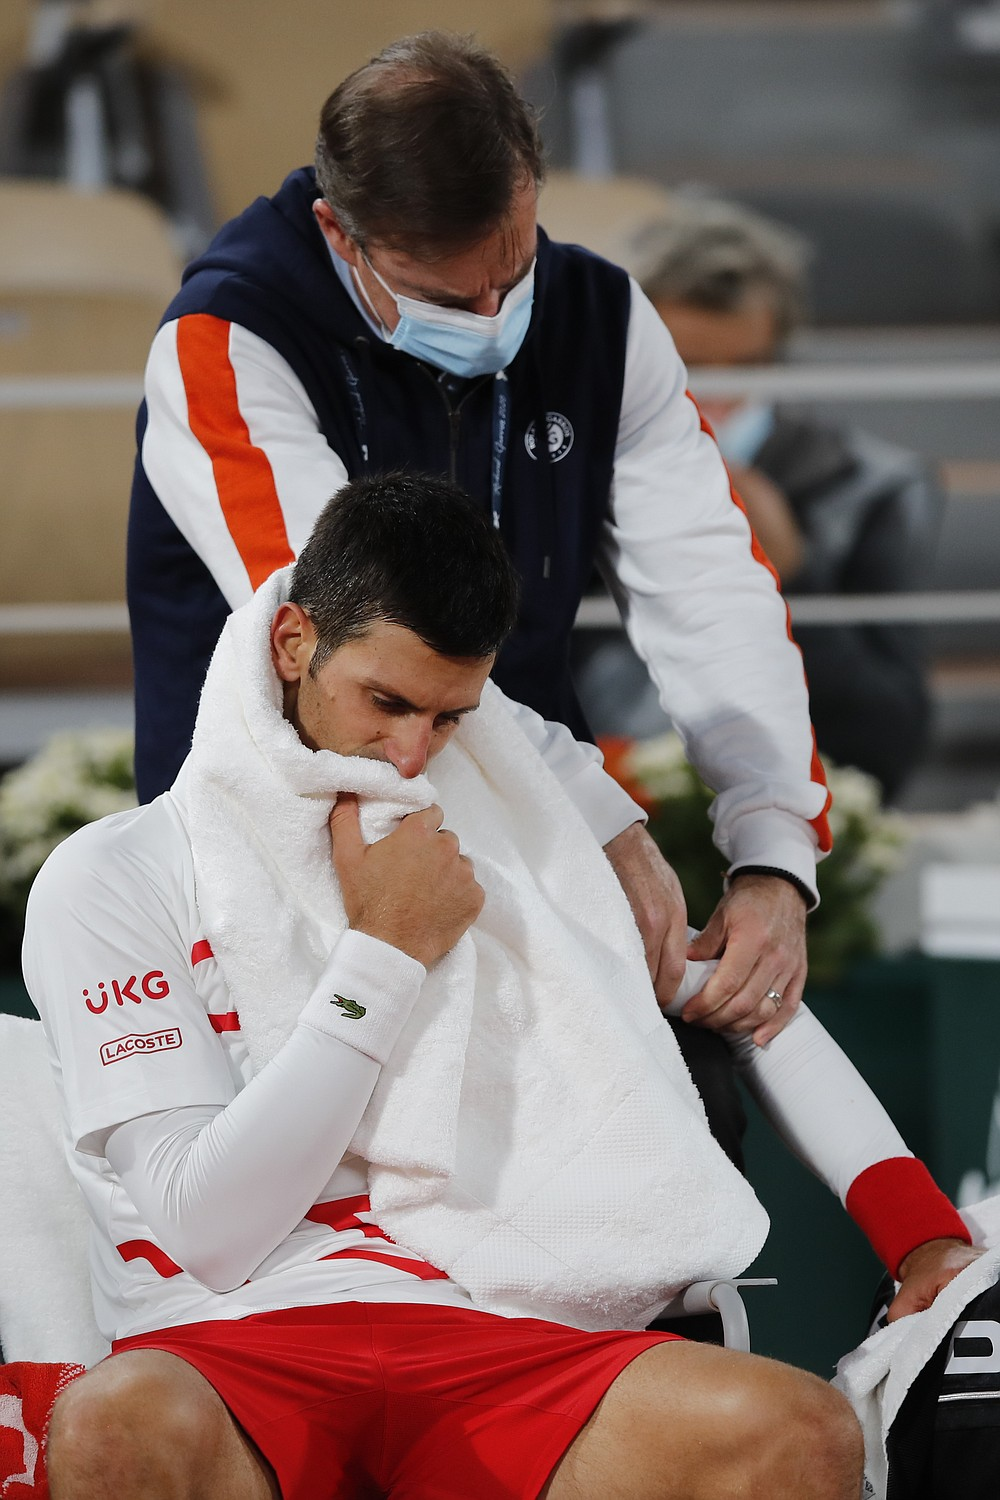 Serbia's Novak Djokovic receives medical assistance for a left arm injury in the quarterfinal match of the French Open tennis tournament against Spain's Pablo Carreno Busta at the Roland Garros stadium in Paris, France, Wednesday, Oct. 7, 2020. (AP Photo/Christophe Ena)